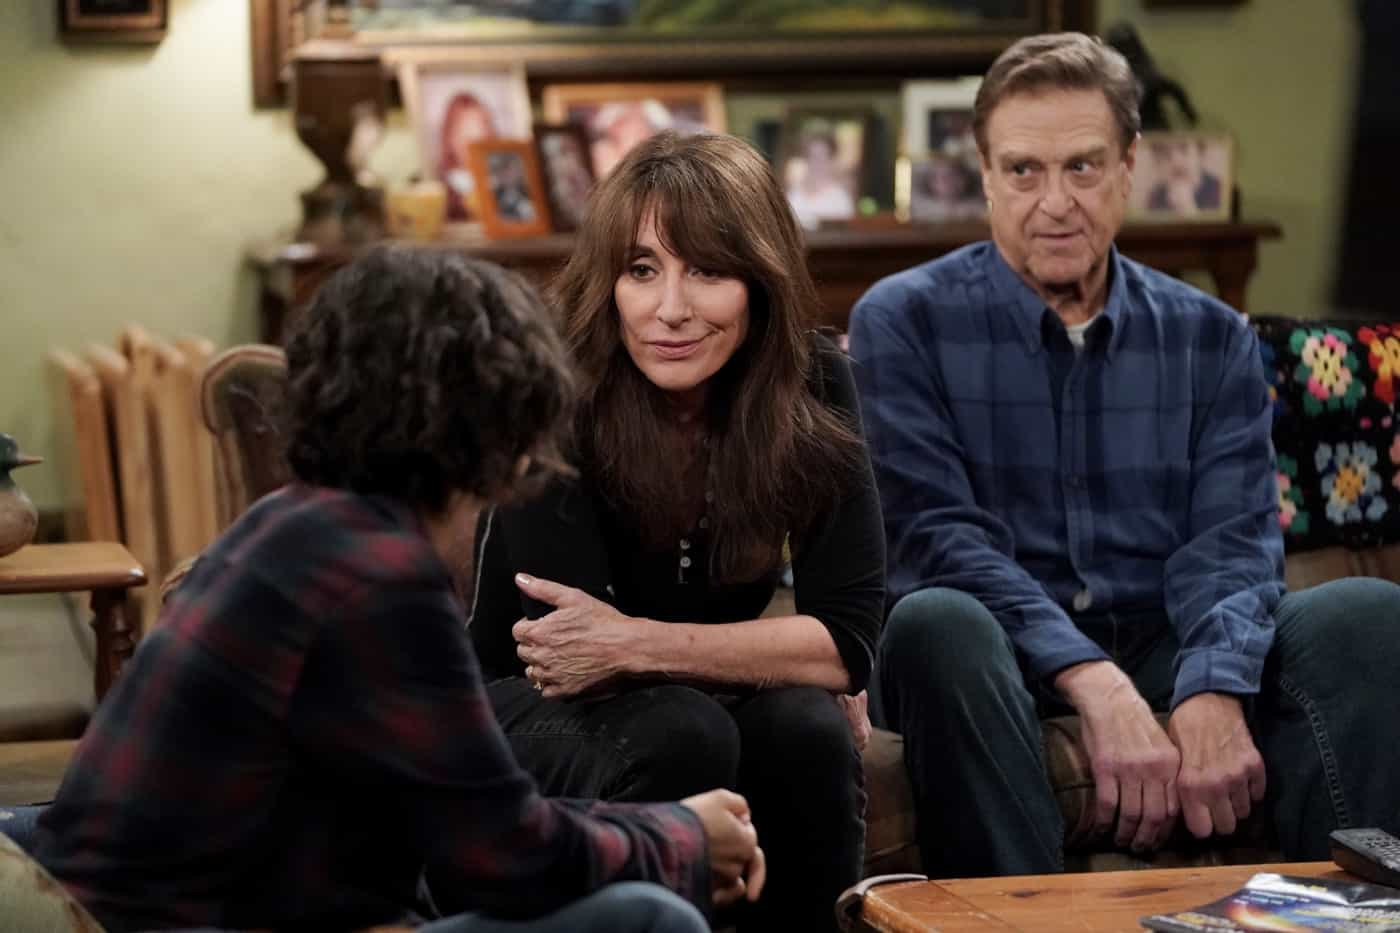 """THE CONNERS Season 4 Episode 3 -""""Sober Sex, Plastic Silverware, and Losing My Religion"""" – Part of Becky's recovery program mandates she make amends with people she has lied to over the years, leading her to meet up again with former high school friend Mikey to apologize for lying to him about her living a successful life. Meanwhile, Darlene visits with Pastor Phil (Jason Alexander), and Louise continues planning her wedding on """"The Conners,"""" WEDNESDAY, OCT. 6 (9:00-9:30 p.m. EDT), on ABC. (ABC/Eric McCandless) KATEY SAGAL"""